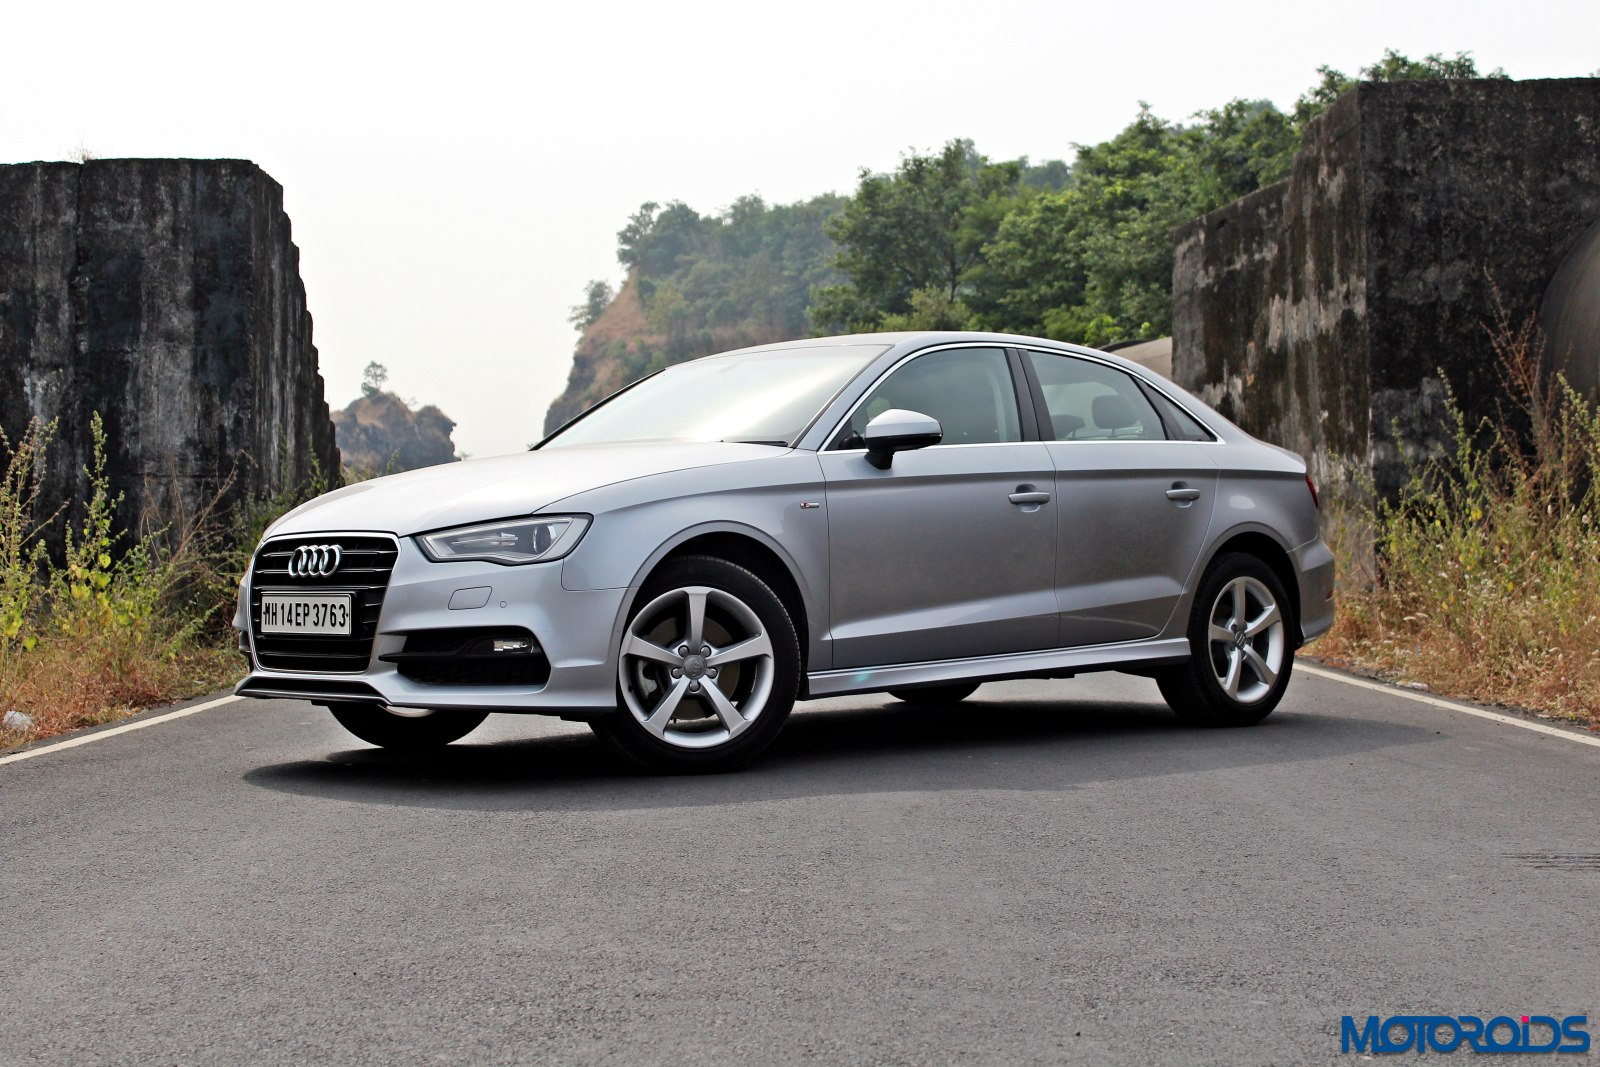 updated 2015 audi a3 1 8 tfsi petrol review quiet brilliance motoroids. Black Bedroom Furniture Sets. Home Design Ideas